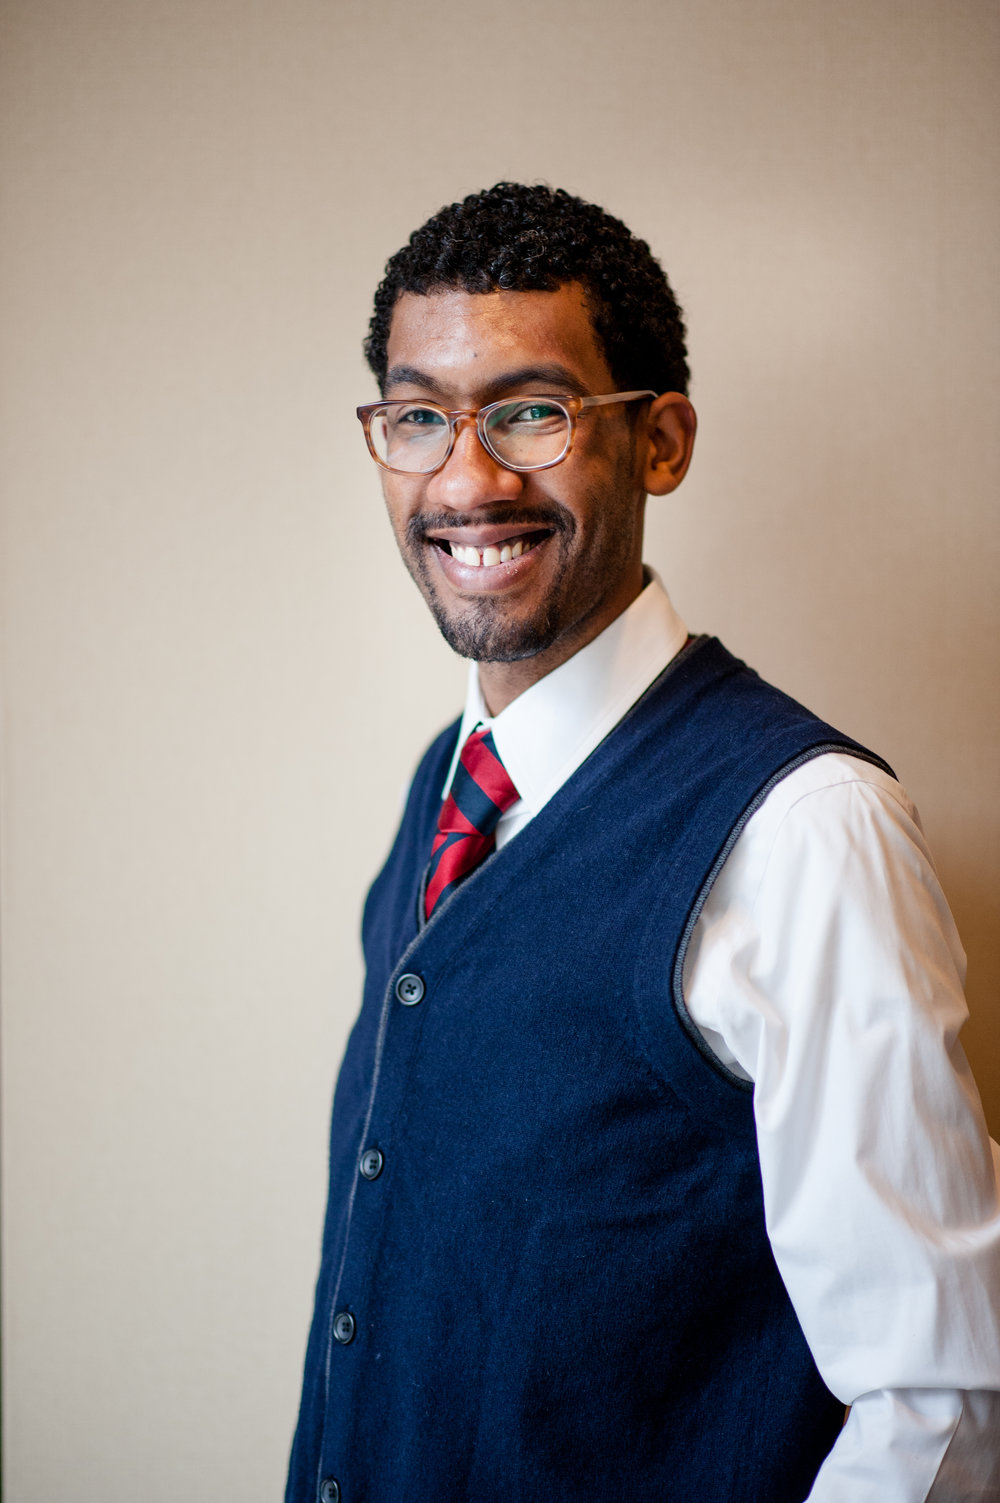 Trey Rabun, Family Outreach Specialist for Amara, based in Seattle, WA